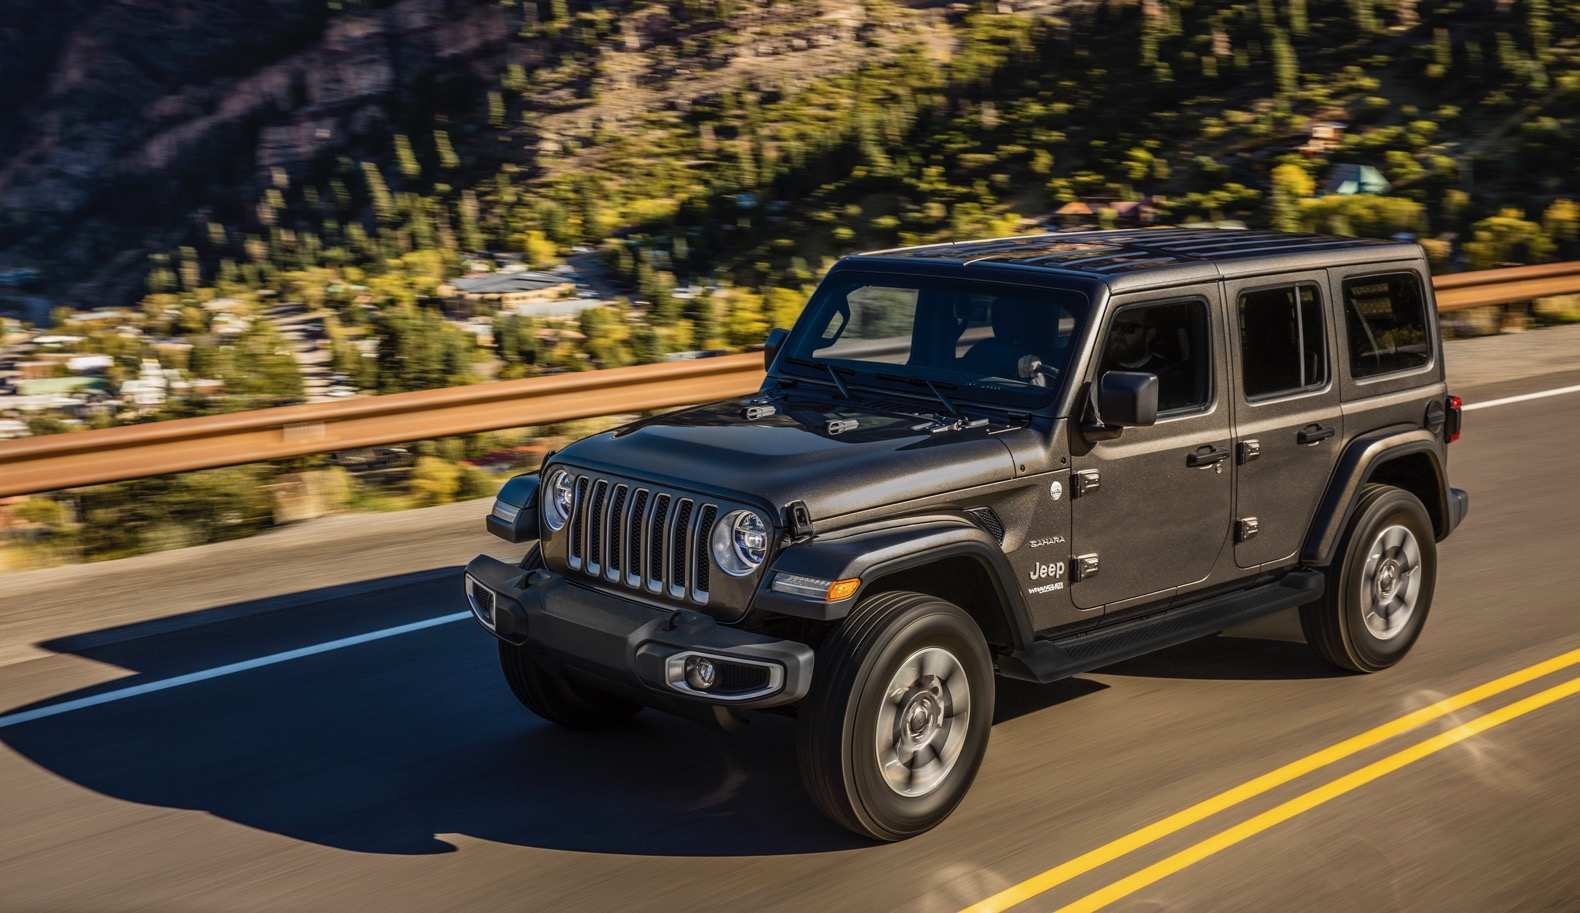 34 New 2019 Jeep Jl Diesel Specs and Review for 2019 Jeep Jl Diesel